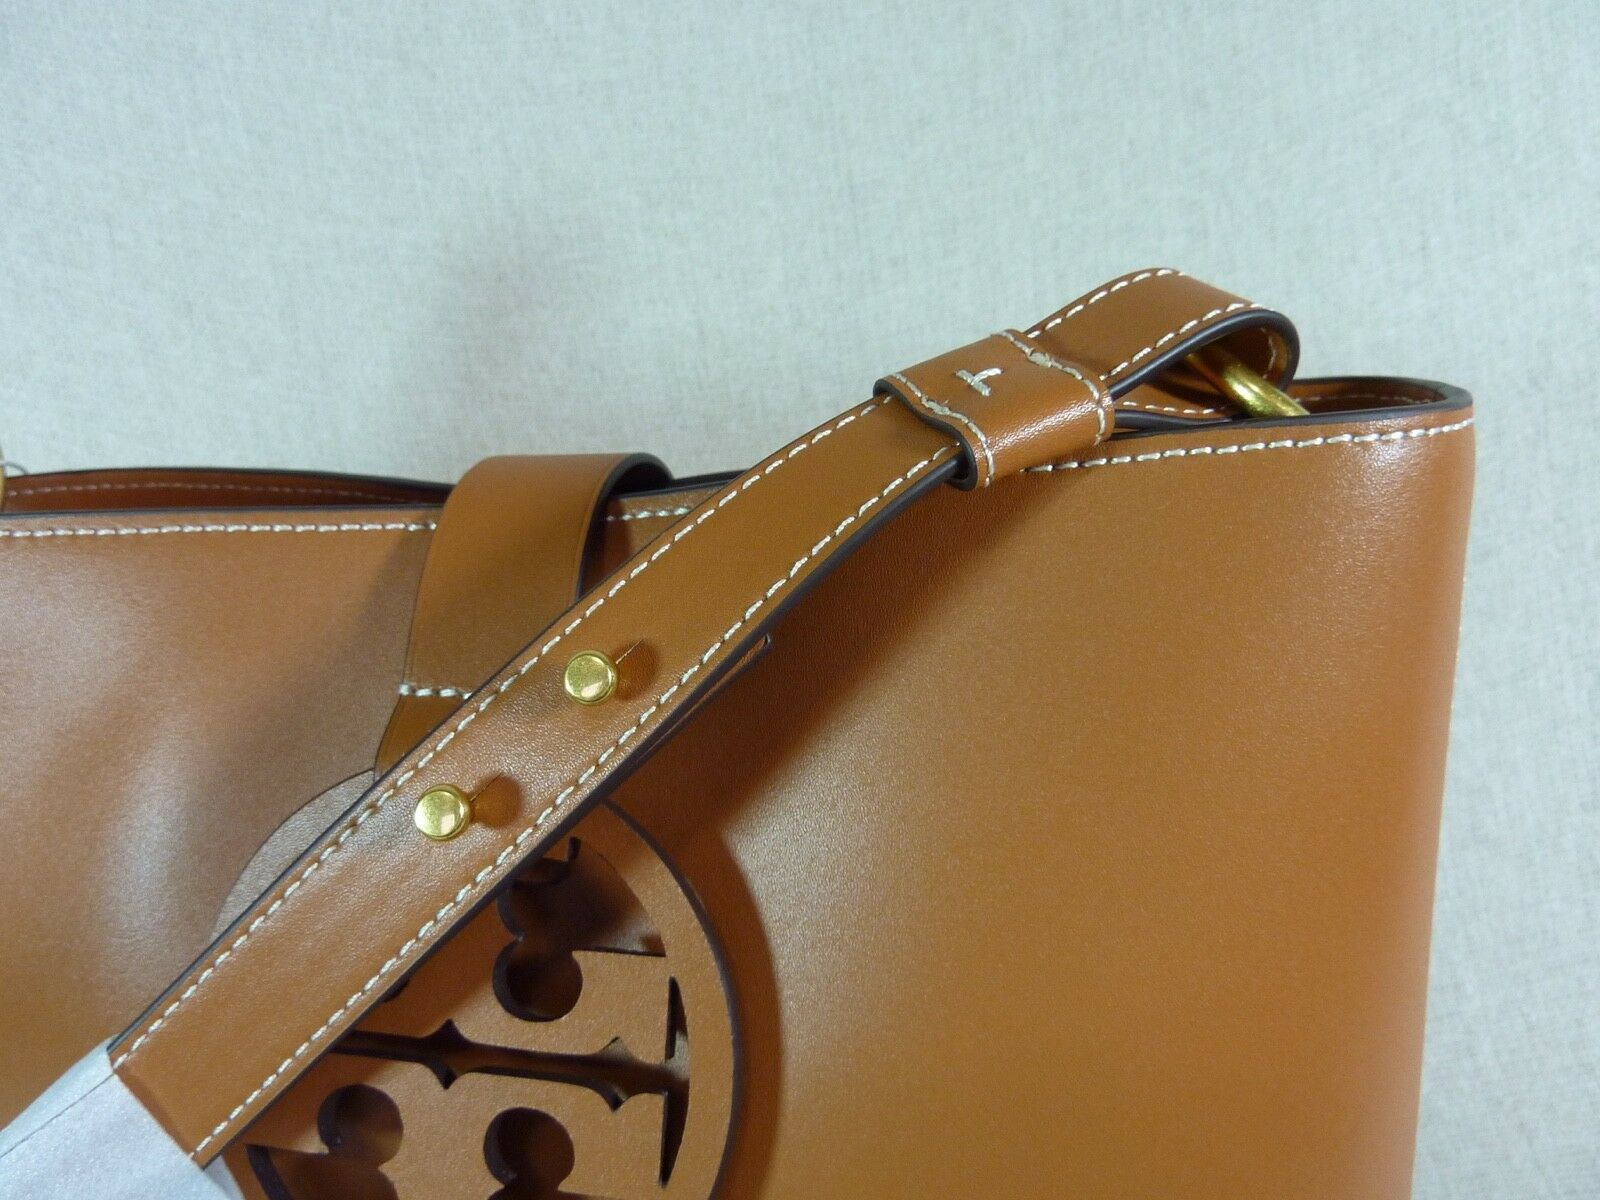 NWT Tory Burch Aged Camello Miller Hobo/Shoulder Tote $458 - Minor Imperfection image 9